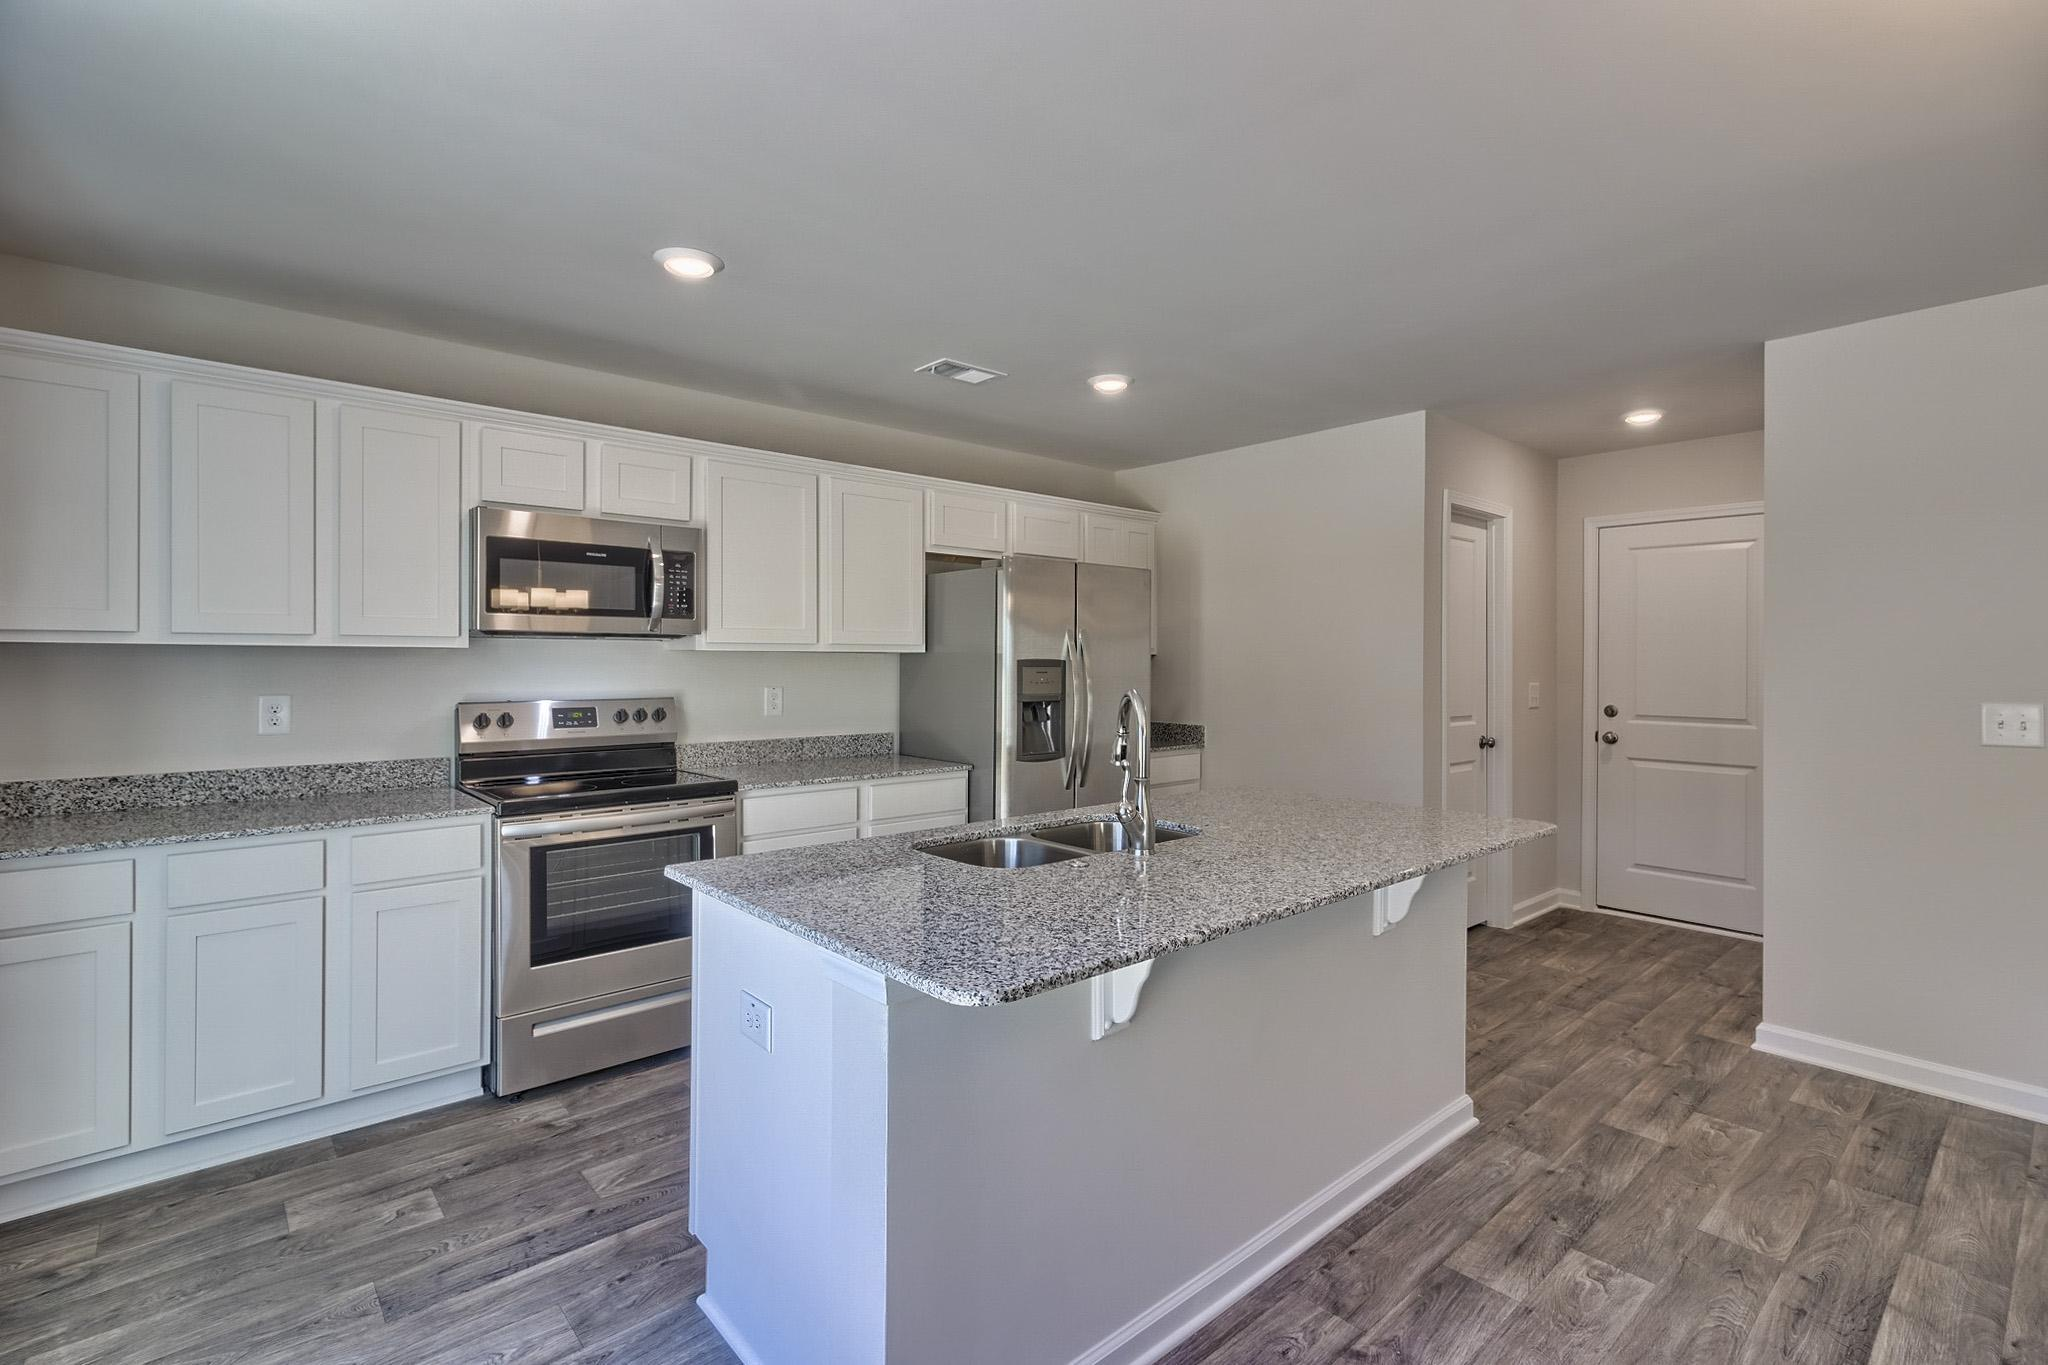 Kitchen featured in the Myrtle By McGuinn Hybrid Homes in Columbia, SC